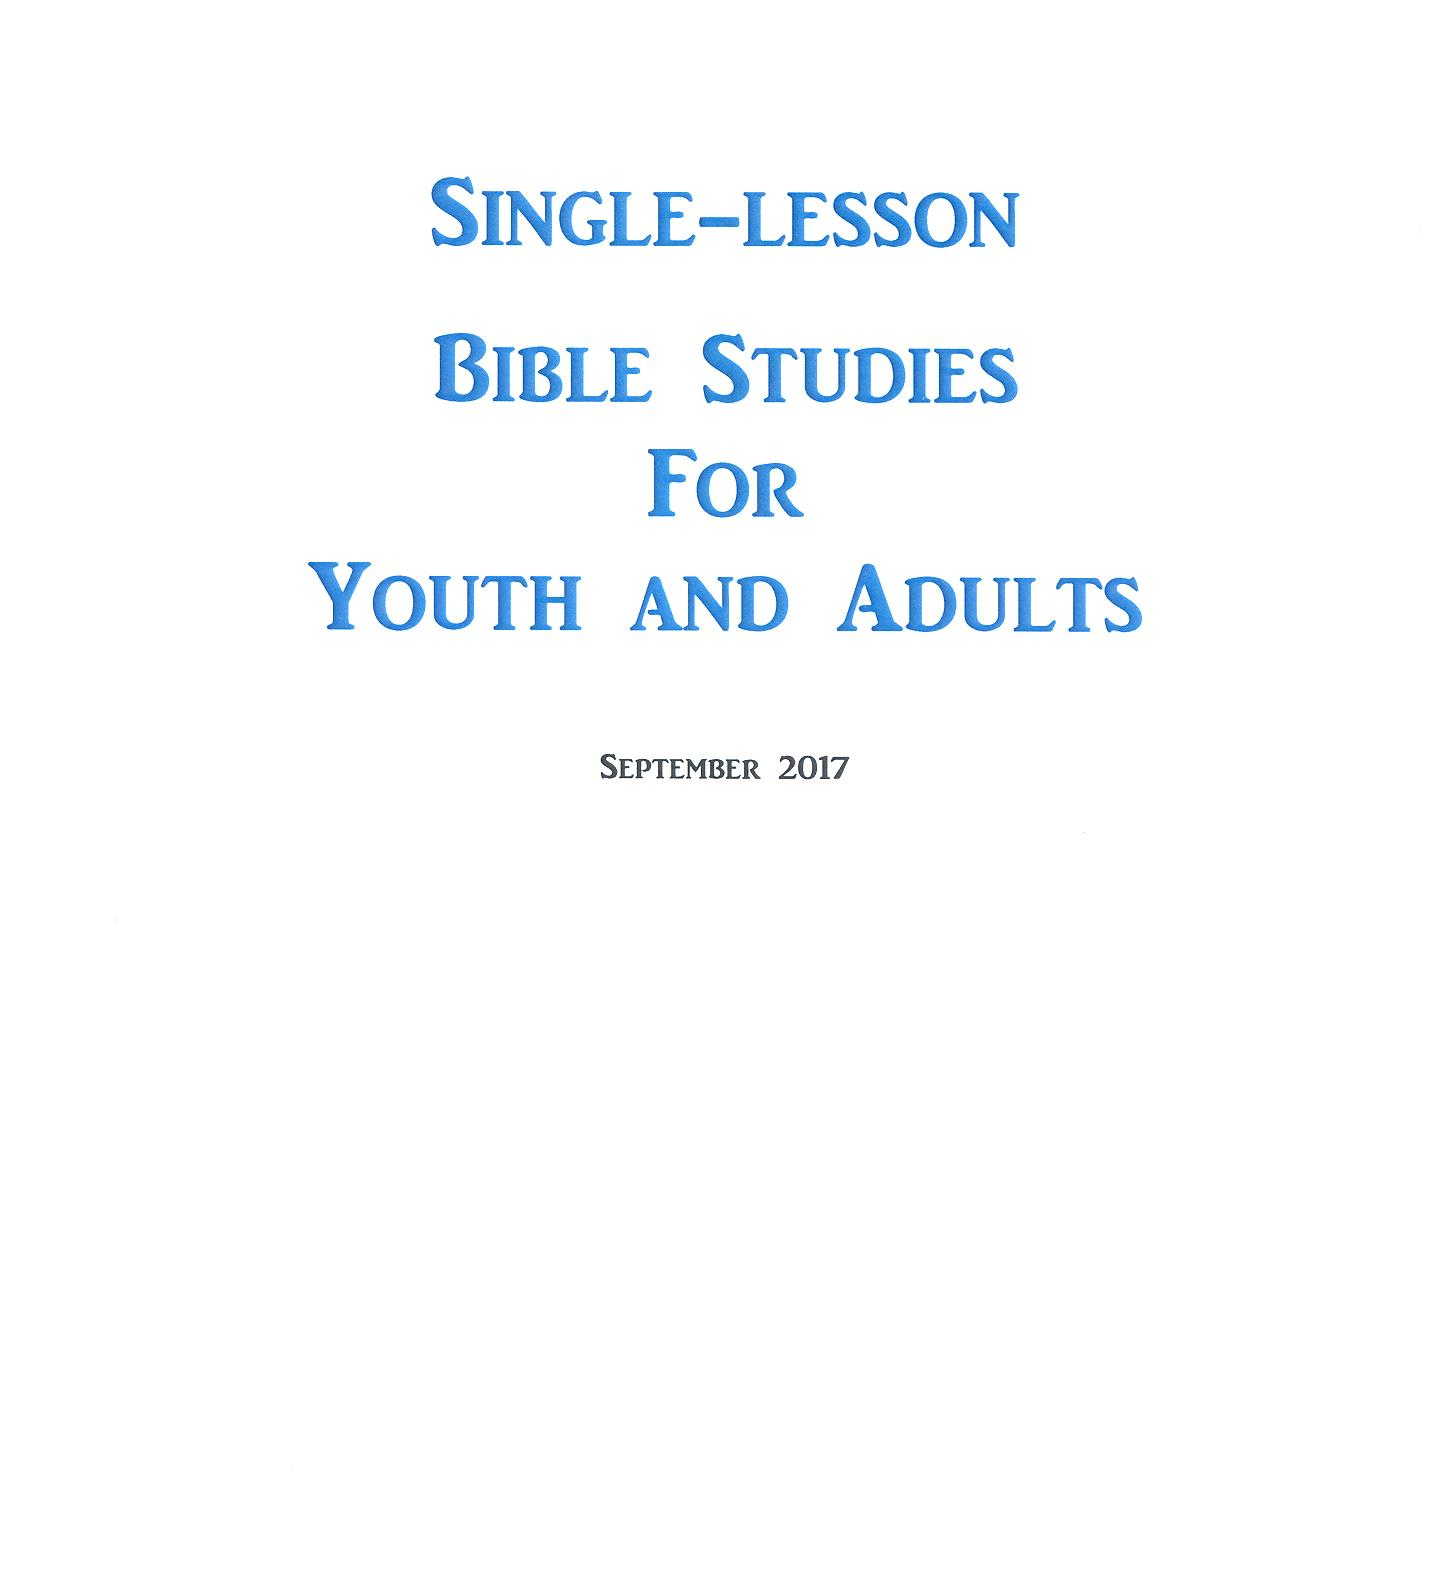 Free Bible Worksheets Free Bible Study Worksheets From Of likewise Bible Activity Worksheets Bible Lesson Worksheets New Bible Lesson in addition Free Worksheets for Bible Study Church Pinterest  229044425445 also Free Printable Bible Study Worksheets – Worksheet Template moreover  further Bible Study Worksheets   cchrisholland also 3 Question Bible Study Worksheet S le   Anne Graham Lotz   Angel further Free Printable Bible Study Worksheets for Adults – Scalsys also Bible Study Lessons For Free And Bible Study Lessons For Small additionally The Bible  Believe It   Study It   Mosaic Church furthermore Free Printable Bible Study Worksheets   Lostranquillos additionally Bible study topics for adults as well Single Bible Study Lessons – Gospel Publishers additionally  together with  also bible study on grace – 7th Grade Math Worksheets. on bible study worksheets for adults